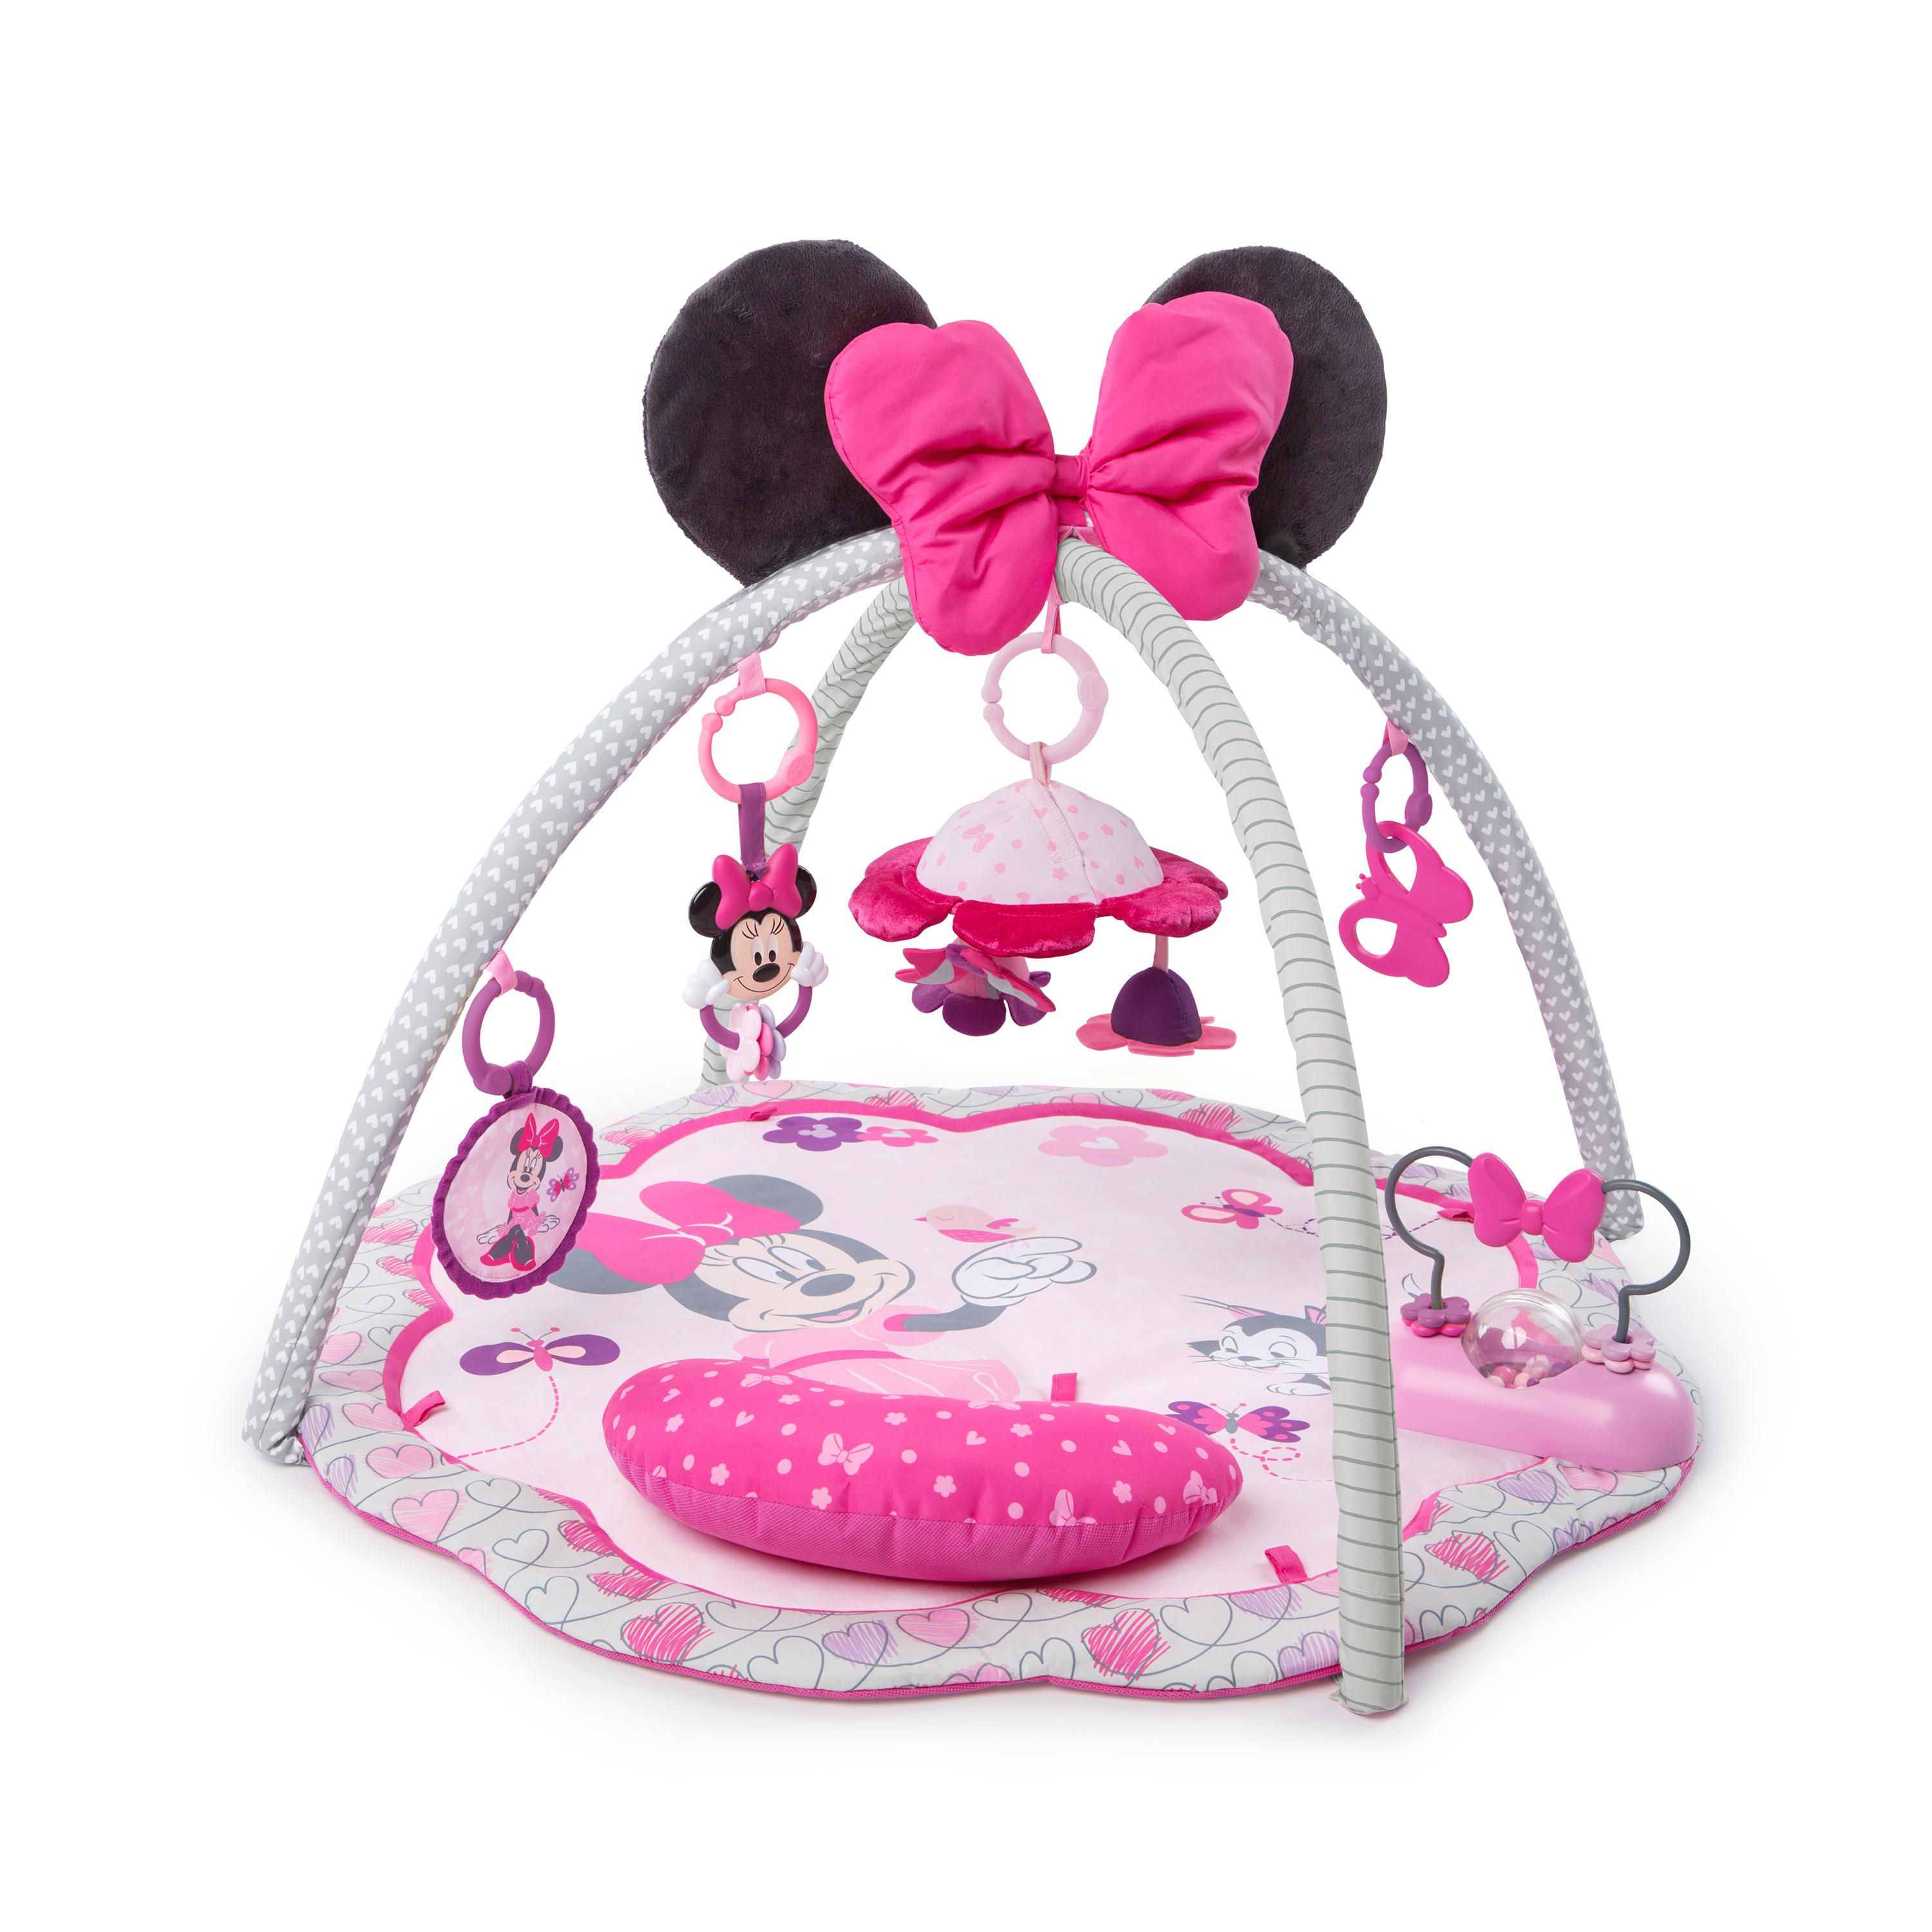 Disney Baby Minnie Mouse Activity Gym and Play Mat - Garden Fun